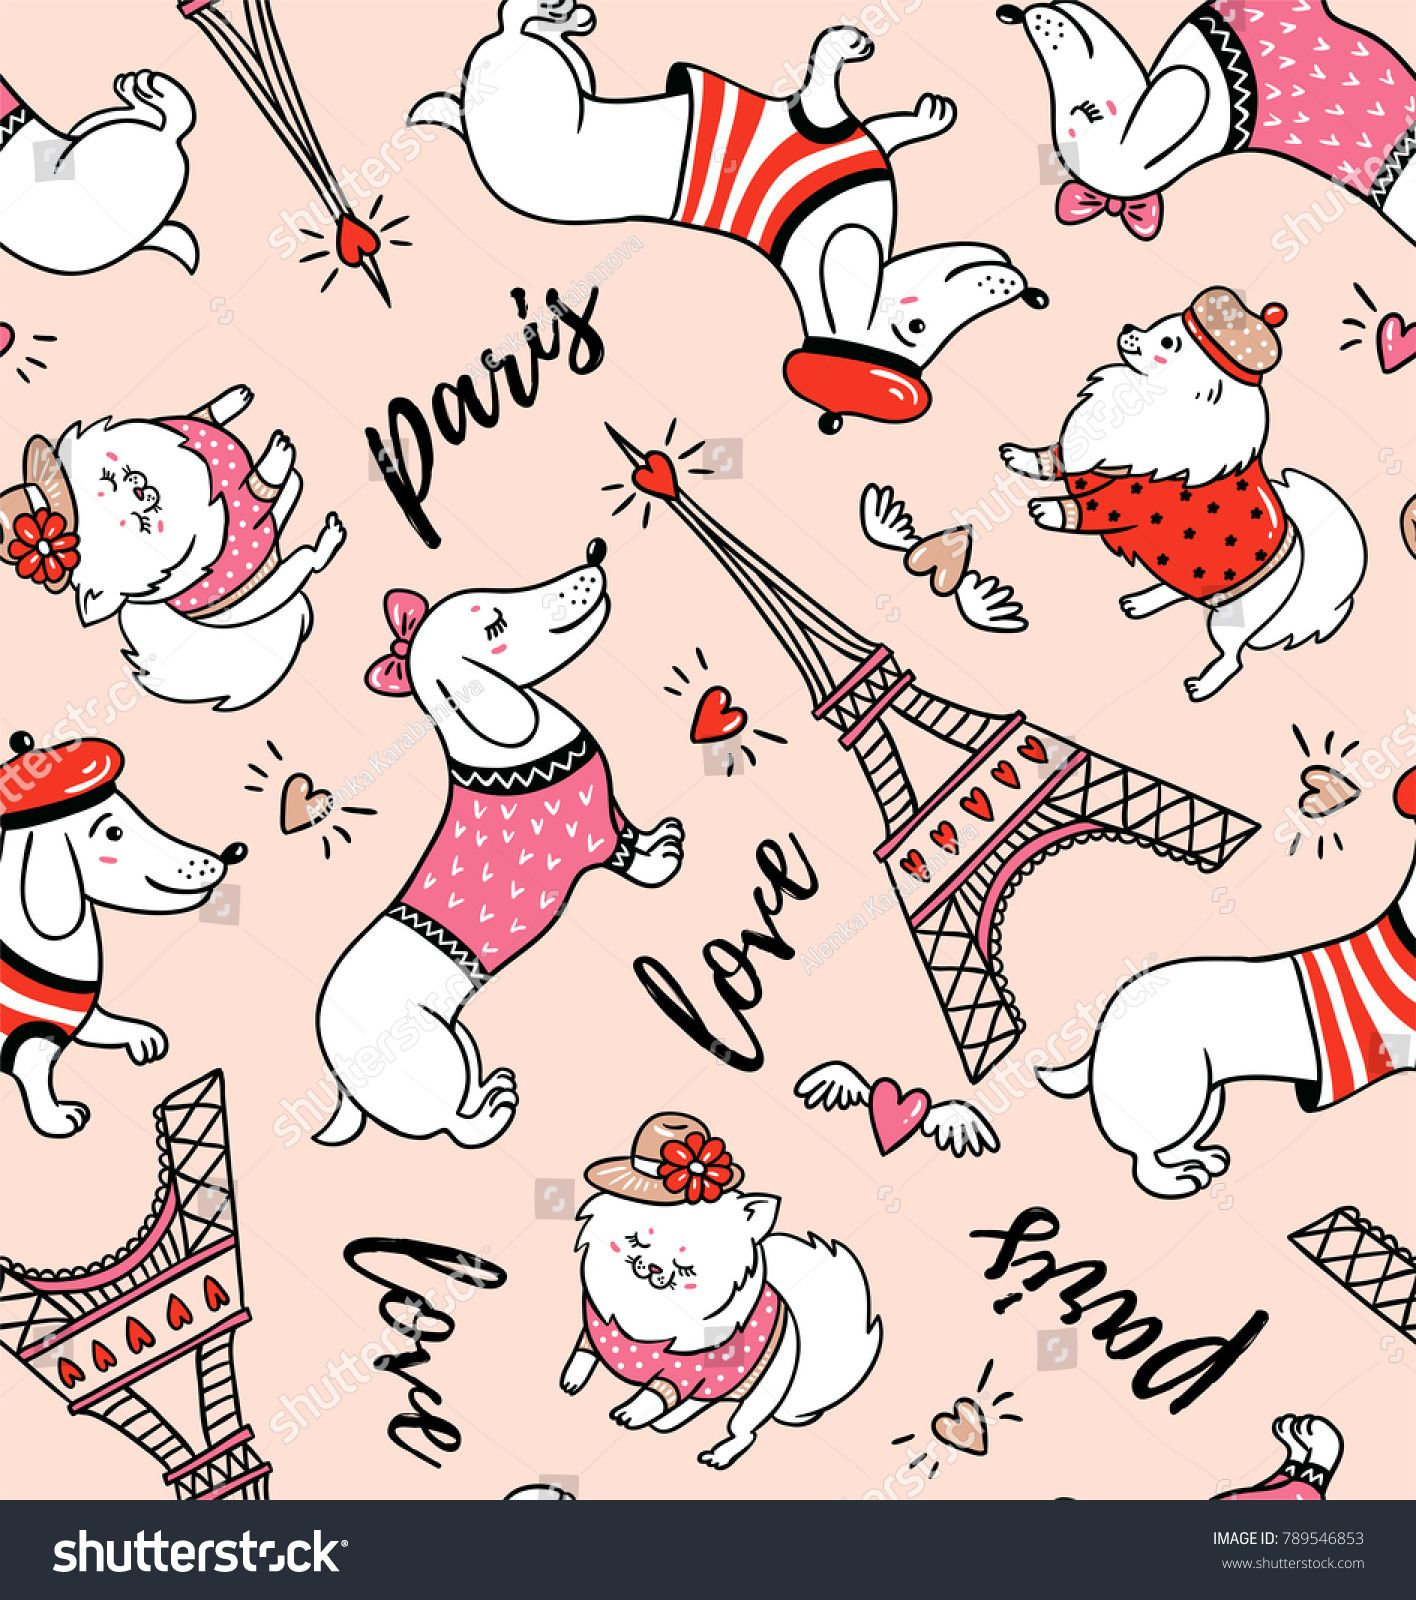 French style dog seamless pattern on pink background. Cute.